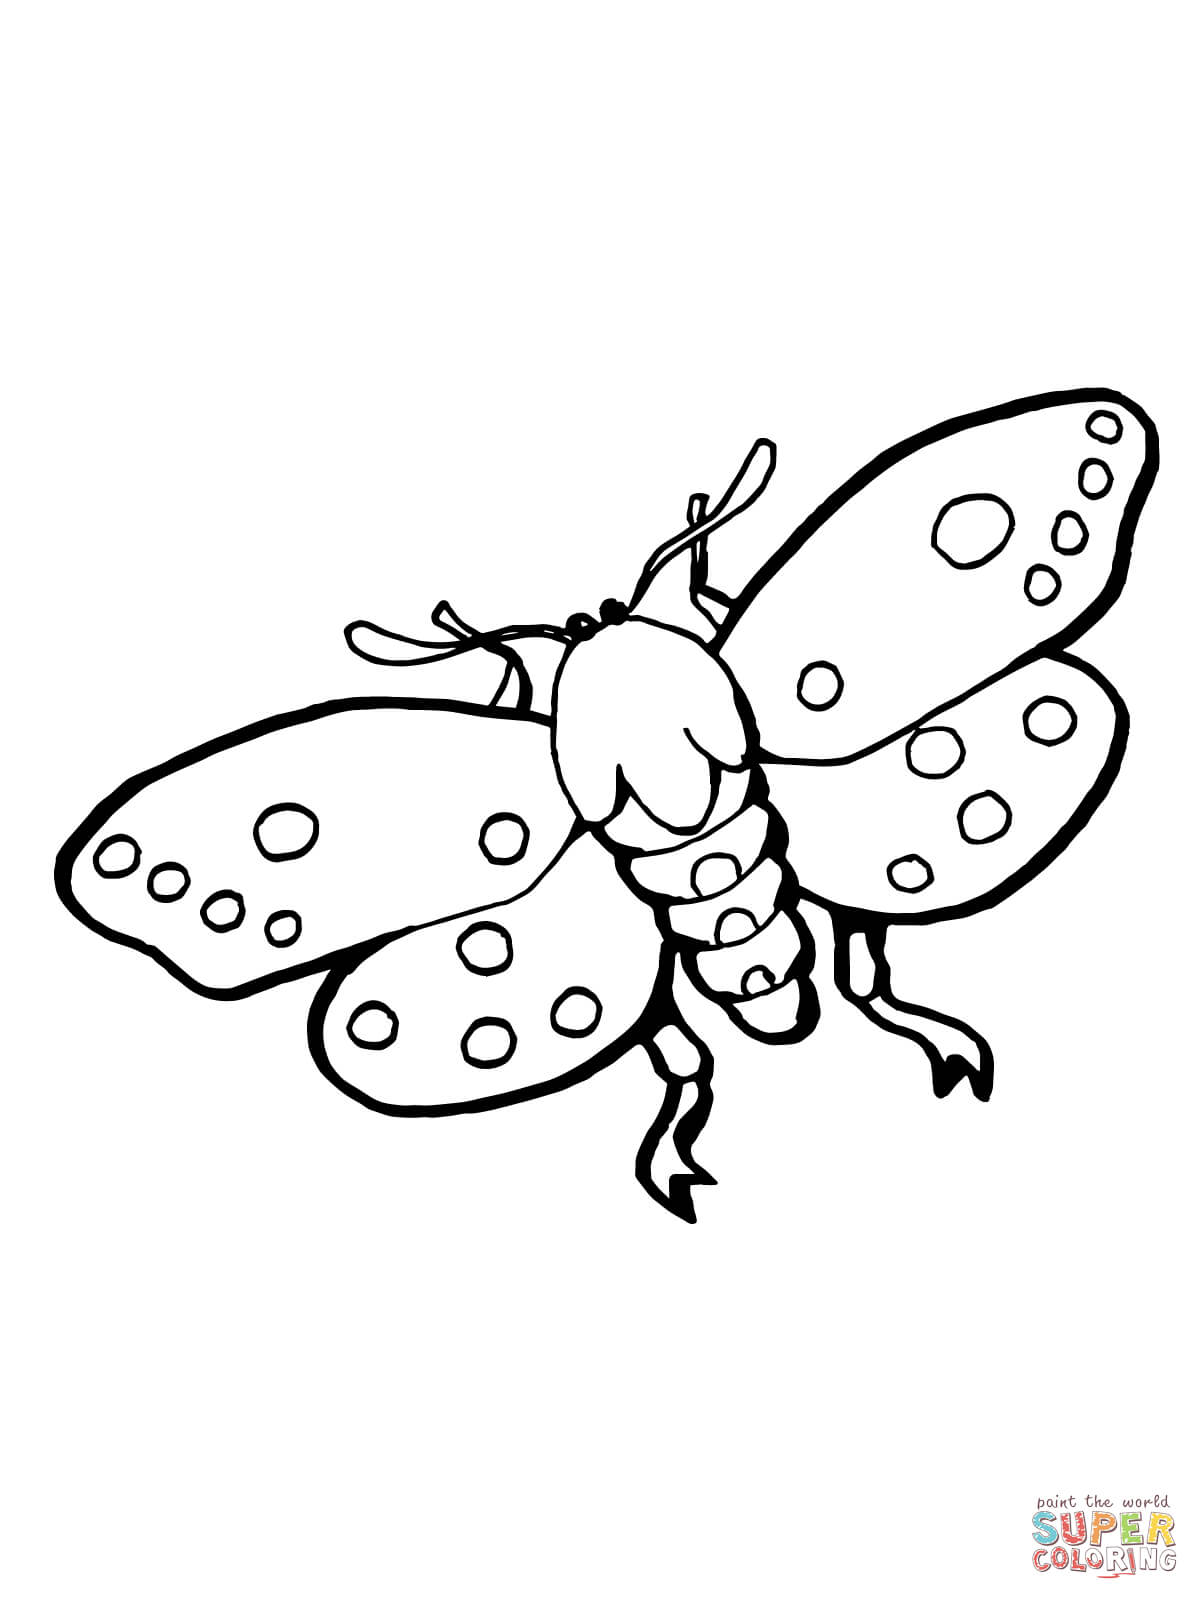 Moths Insect Coloring Page Free Printable Coloring Pages